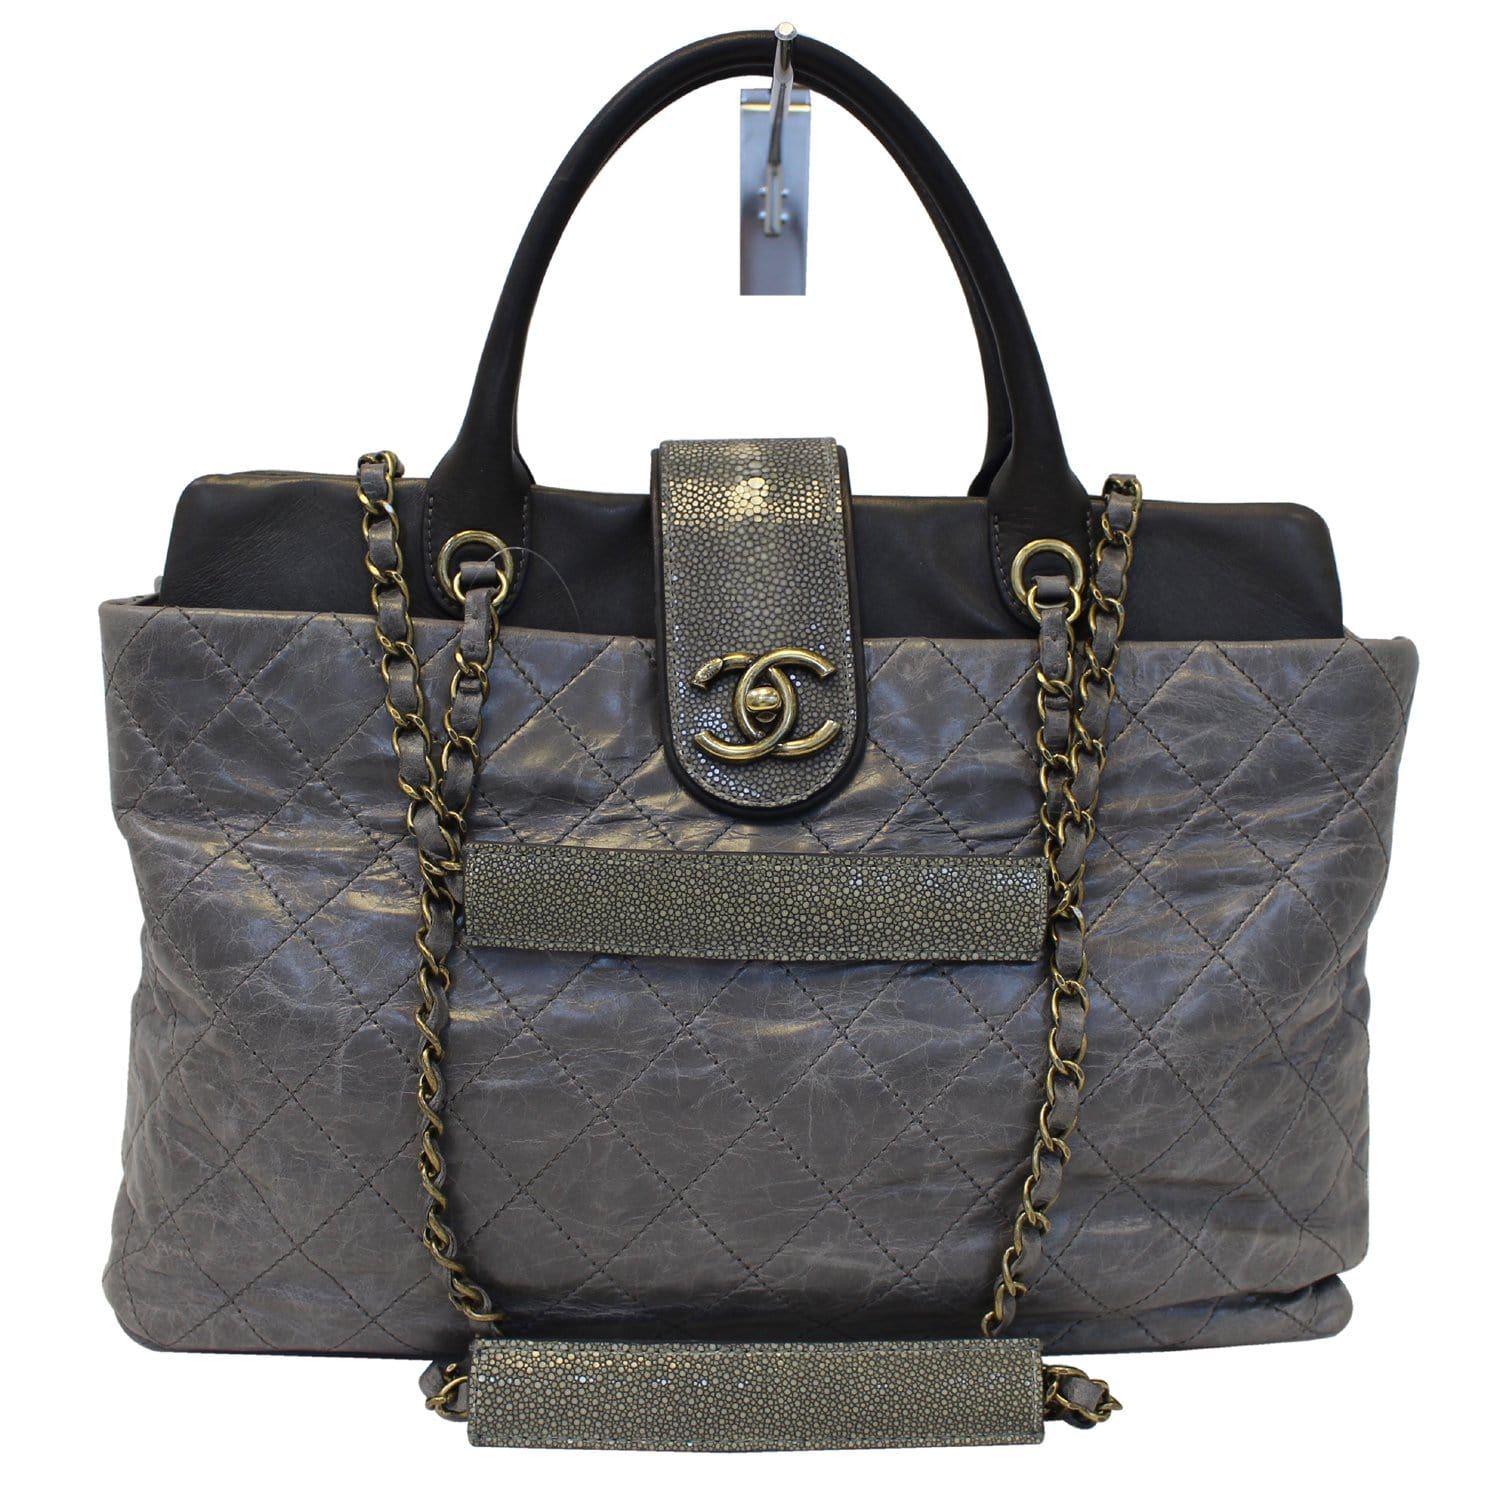 c590980d6ca CHANEL Grey Quilted Calfskin Leather Stingray Bindi CC Shopper Tote ...